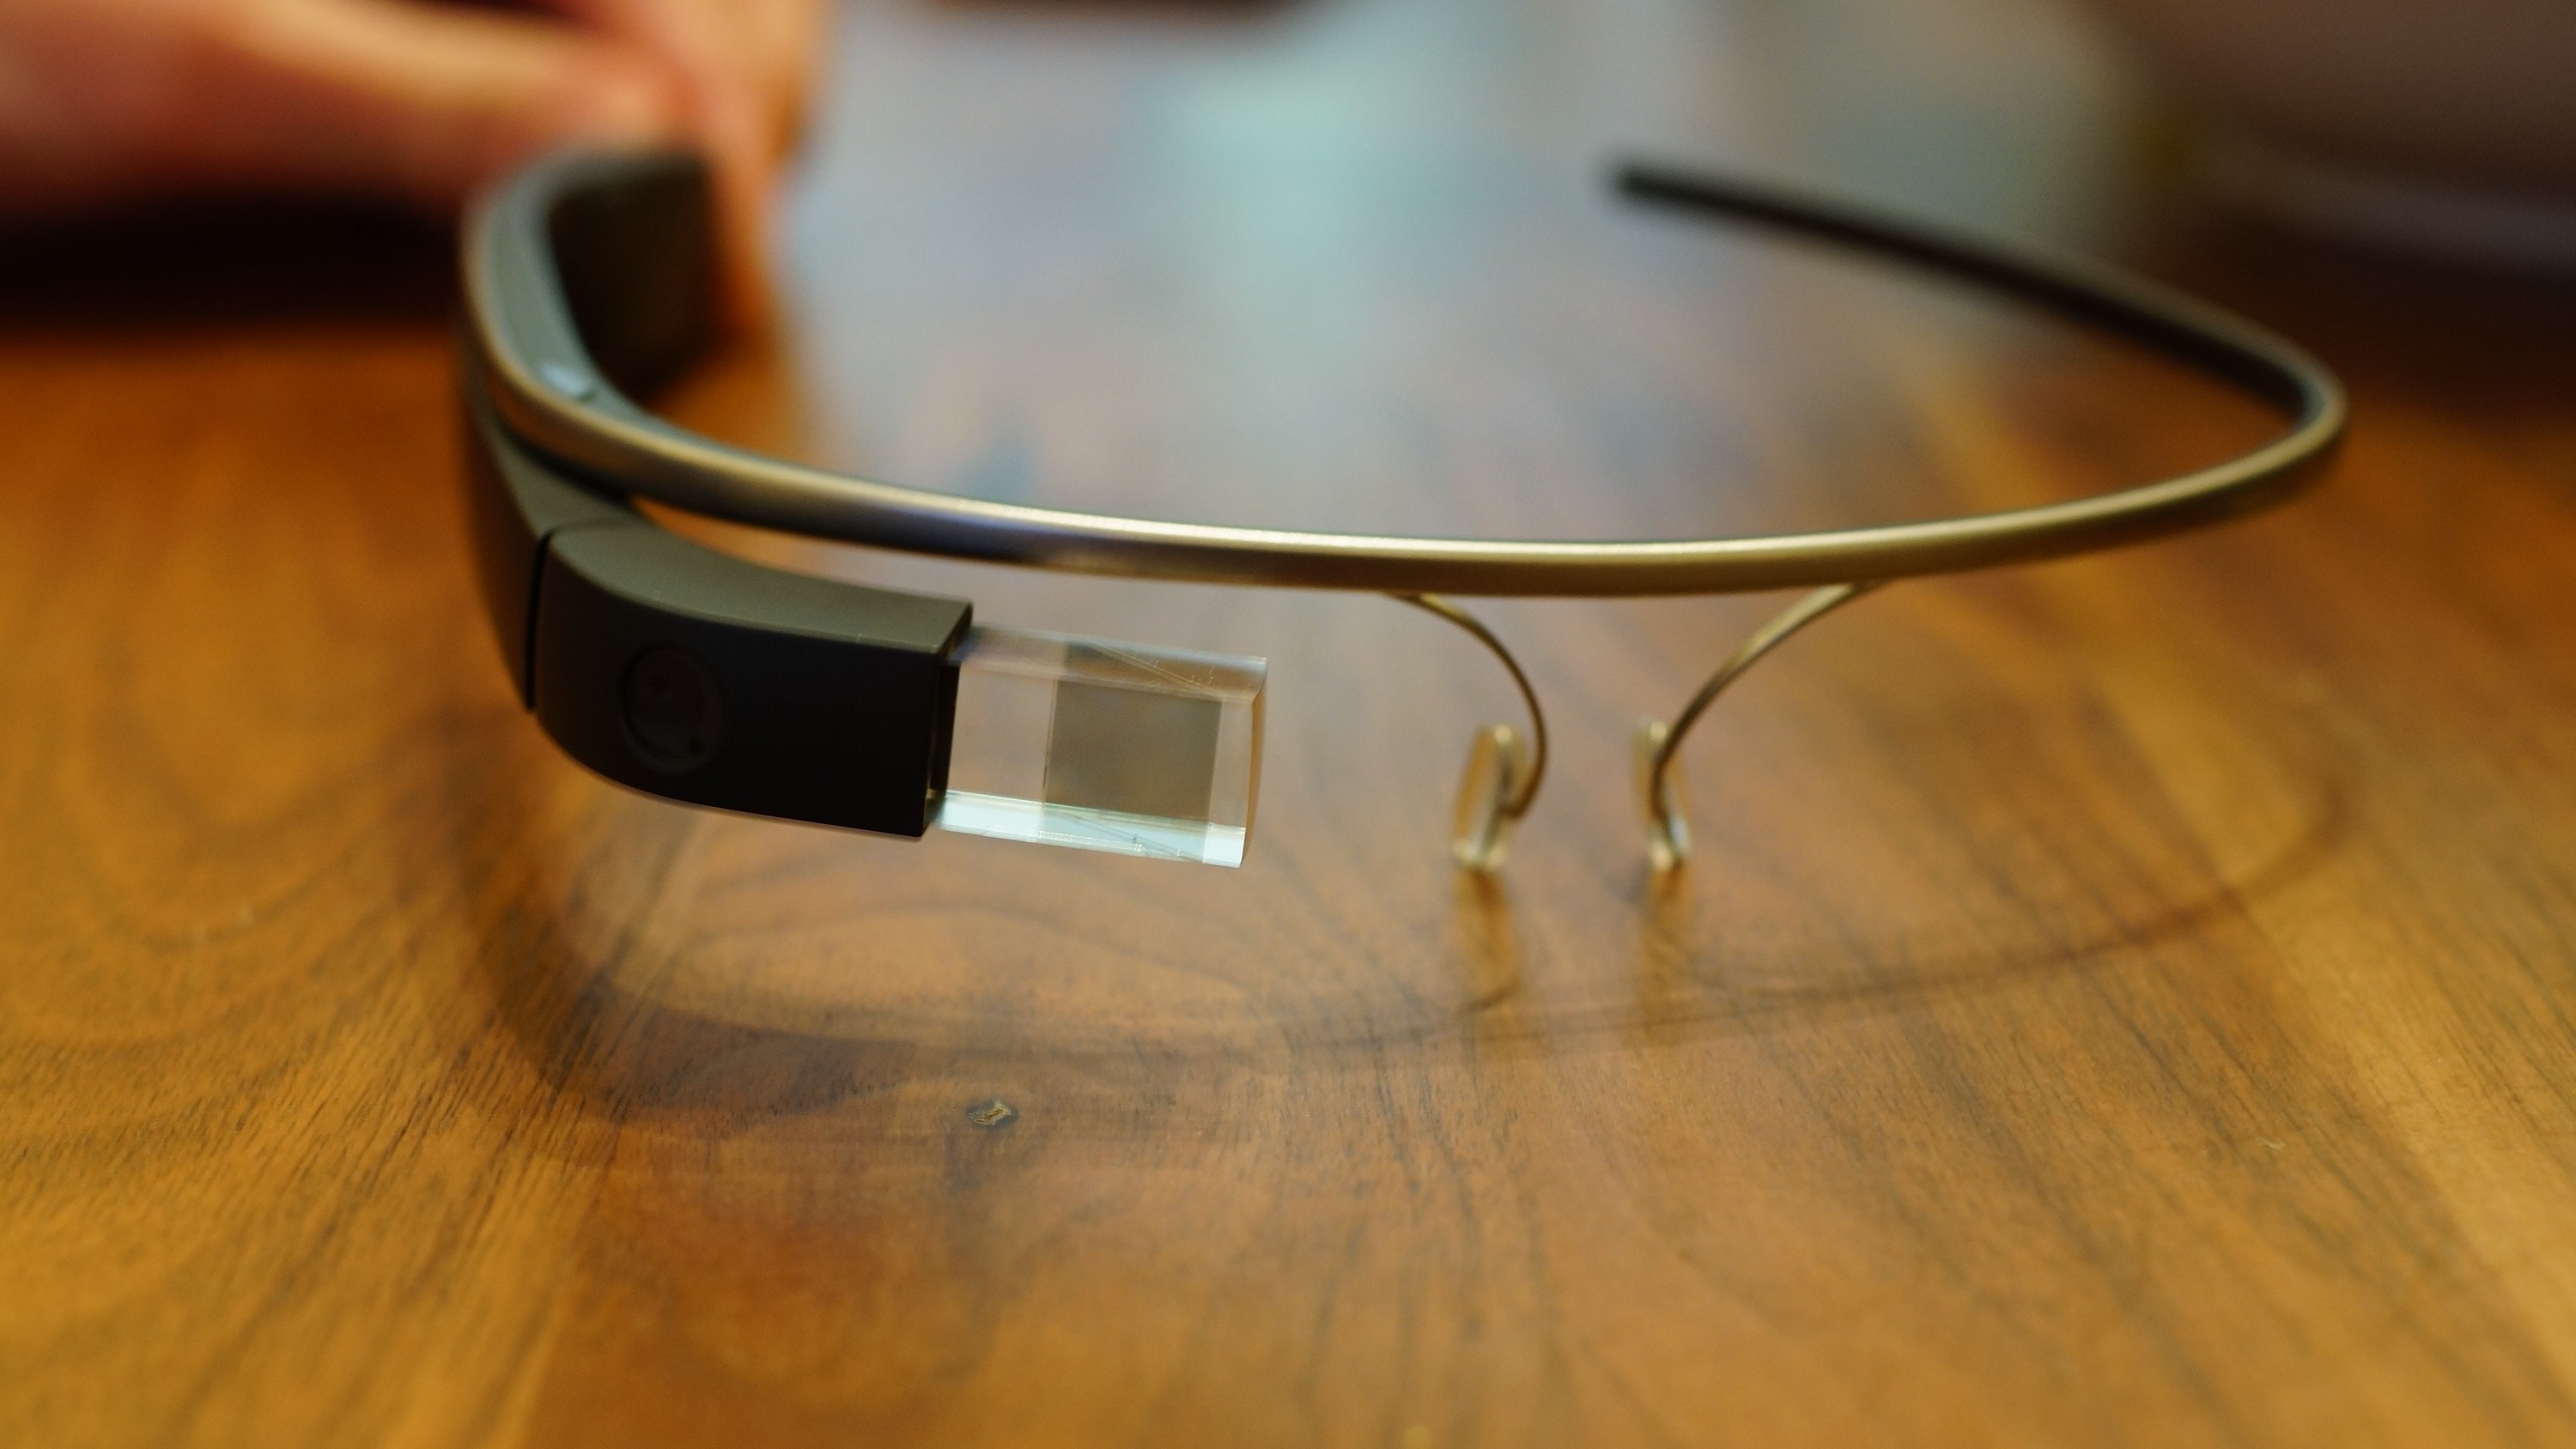 The First Case of 'Google Glass Addiction' Is Really an Addiction to Work